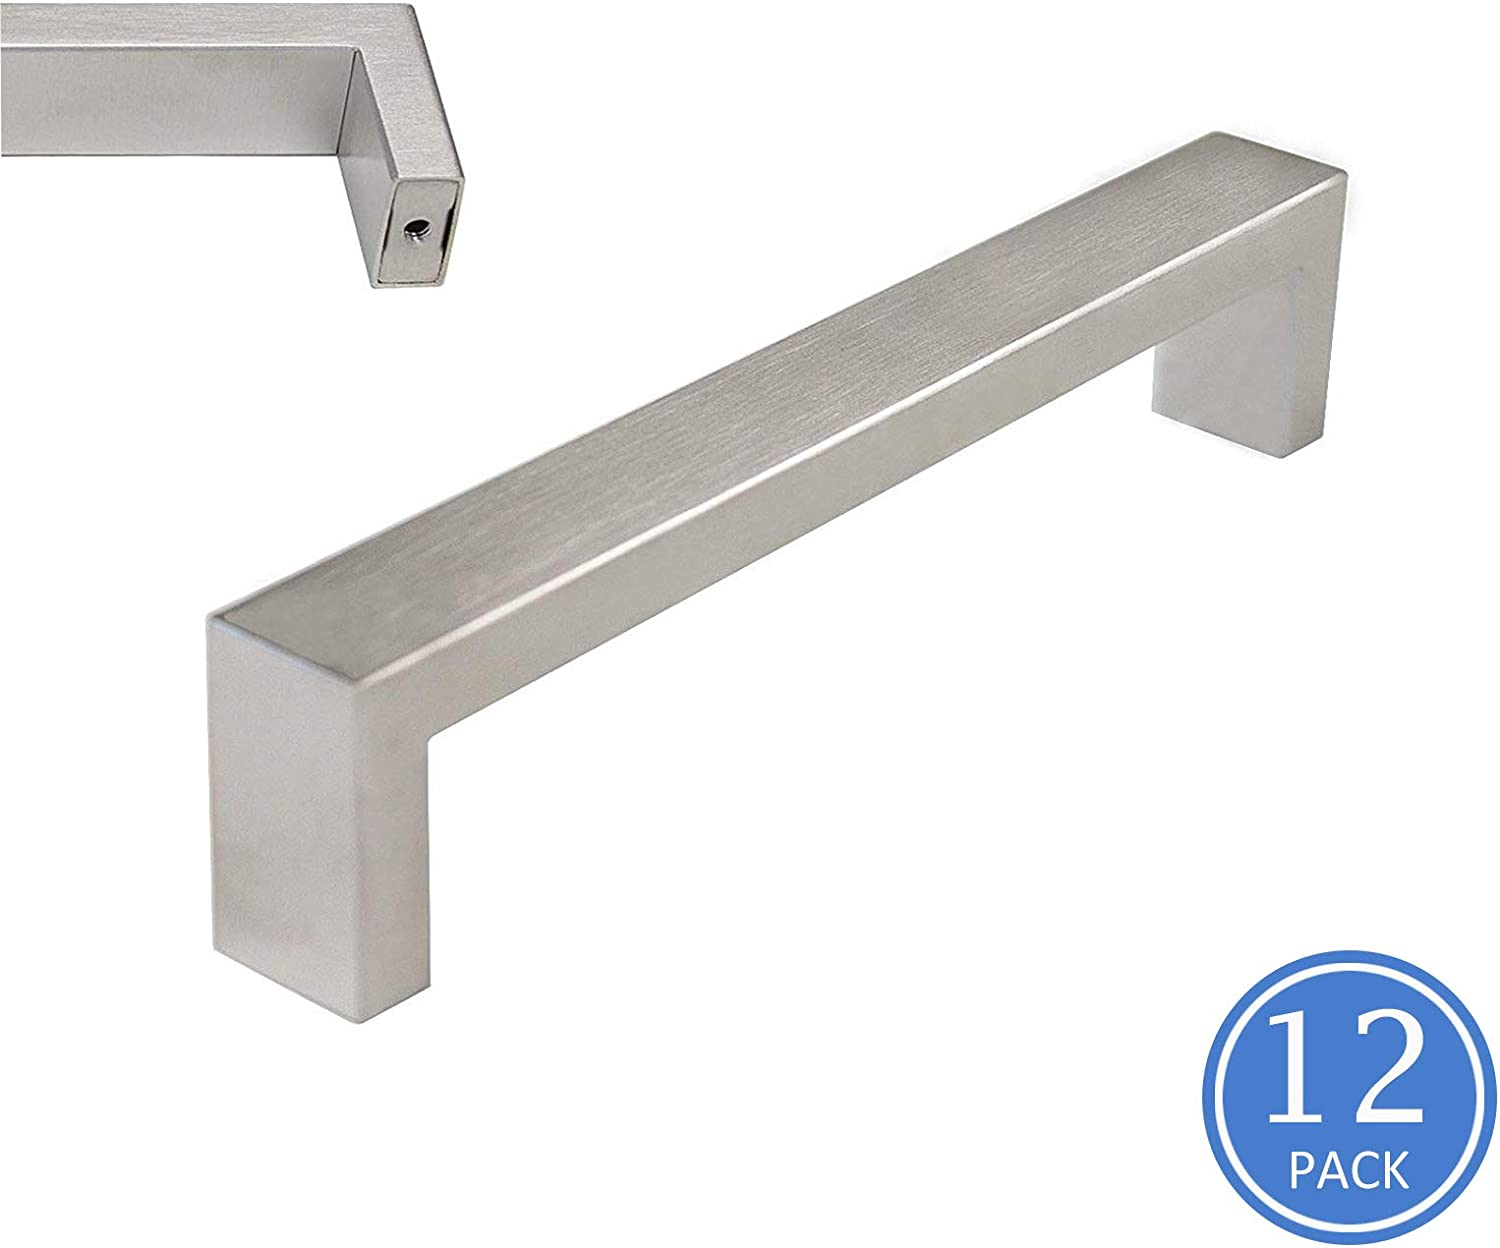 Knobonly Square Kitchen Cupboard Brushed Nickel Handles 160mm 6-1 2 inch Hole Spacing Cabinet Pulls 20mm Wide-12 Pack